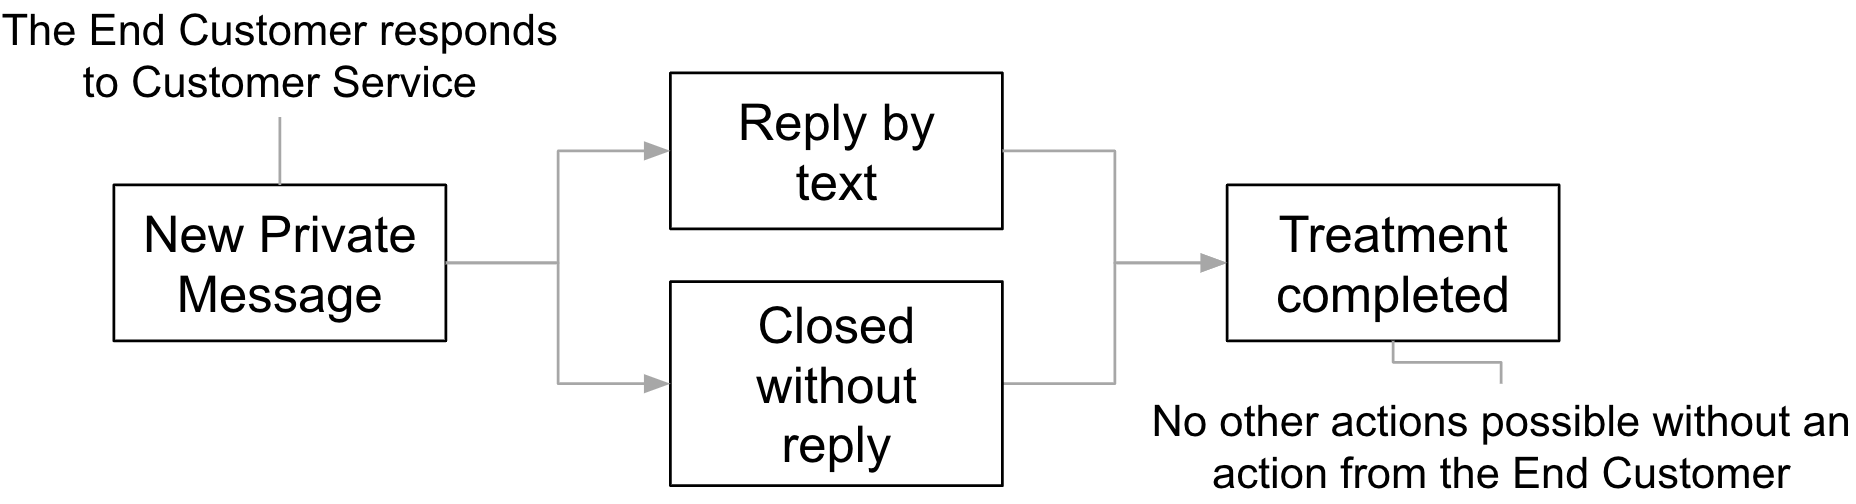 Secondary Use Case: processing of End Customer's response